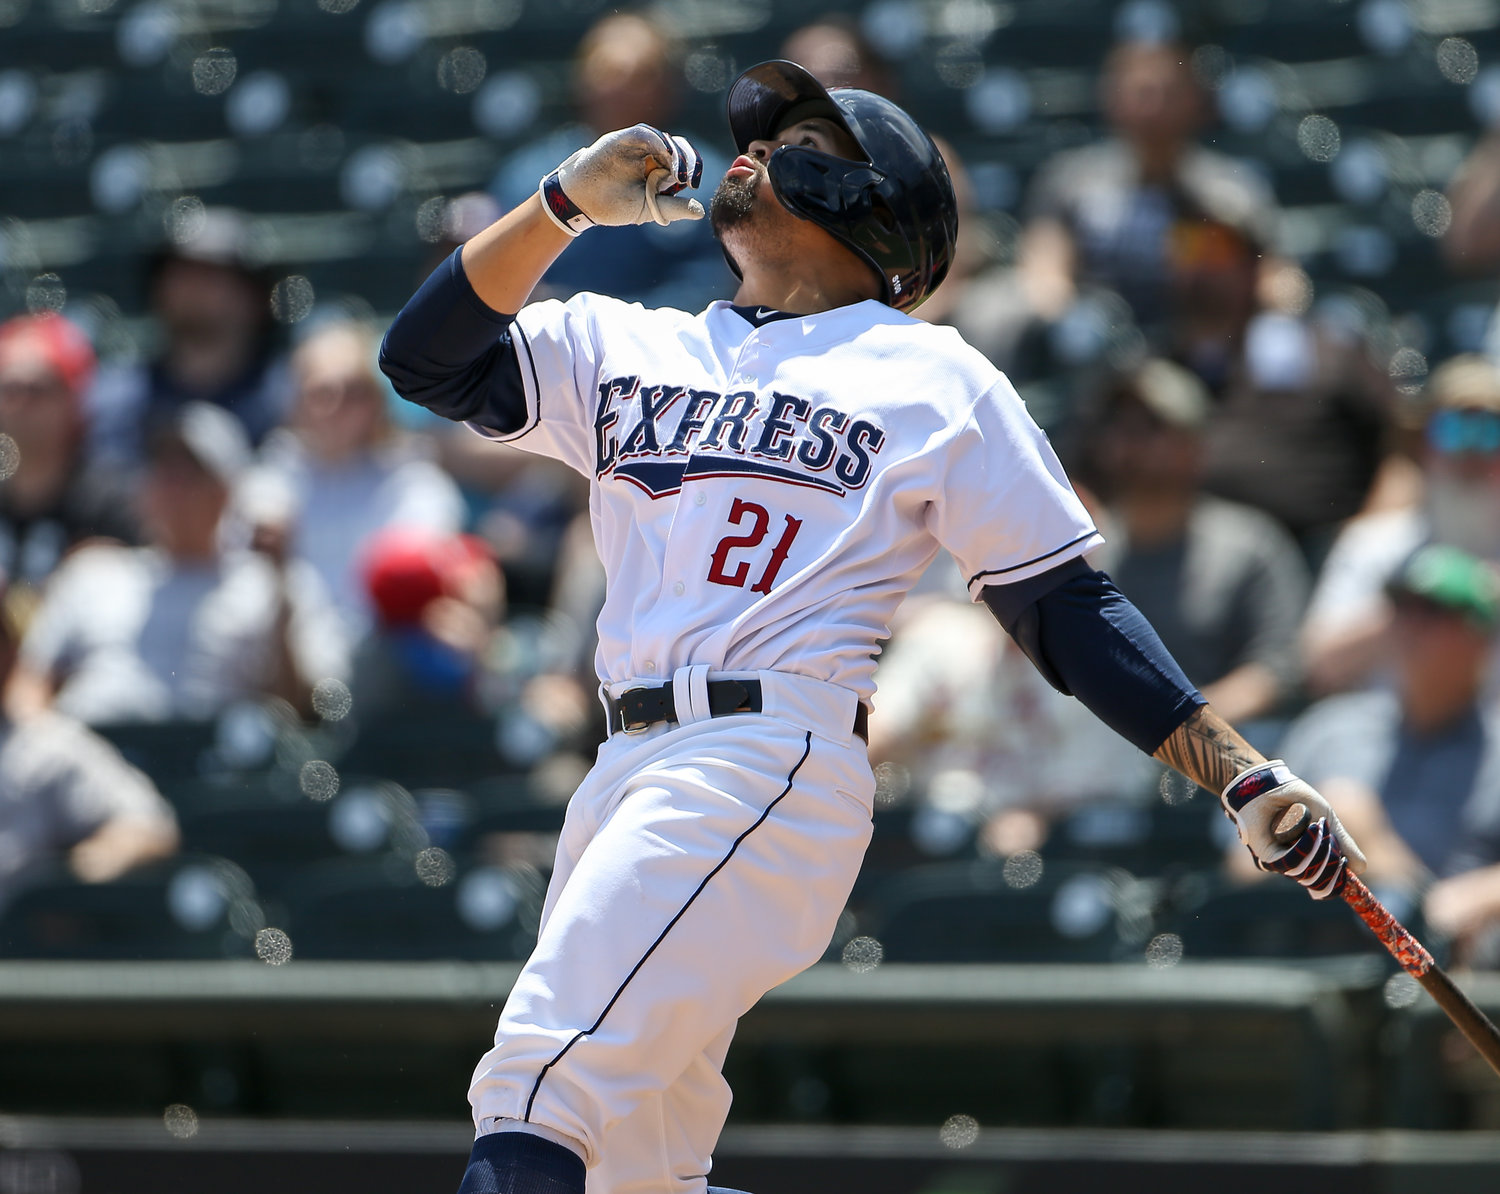 Round Rock Express third baseman Nick Tanielu (21) at bat during a Minor League Baseball game between Round Rock and Memphis on April 15, 2019 at Dell Diamond in Round Rock, Texas.